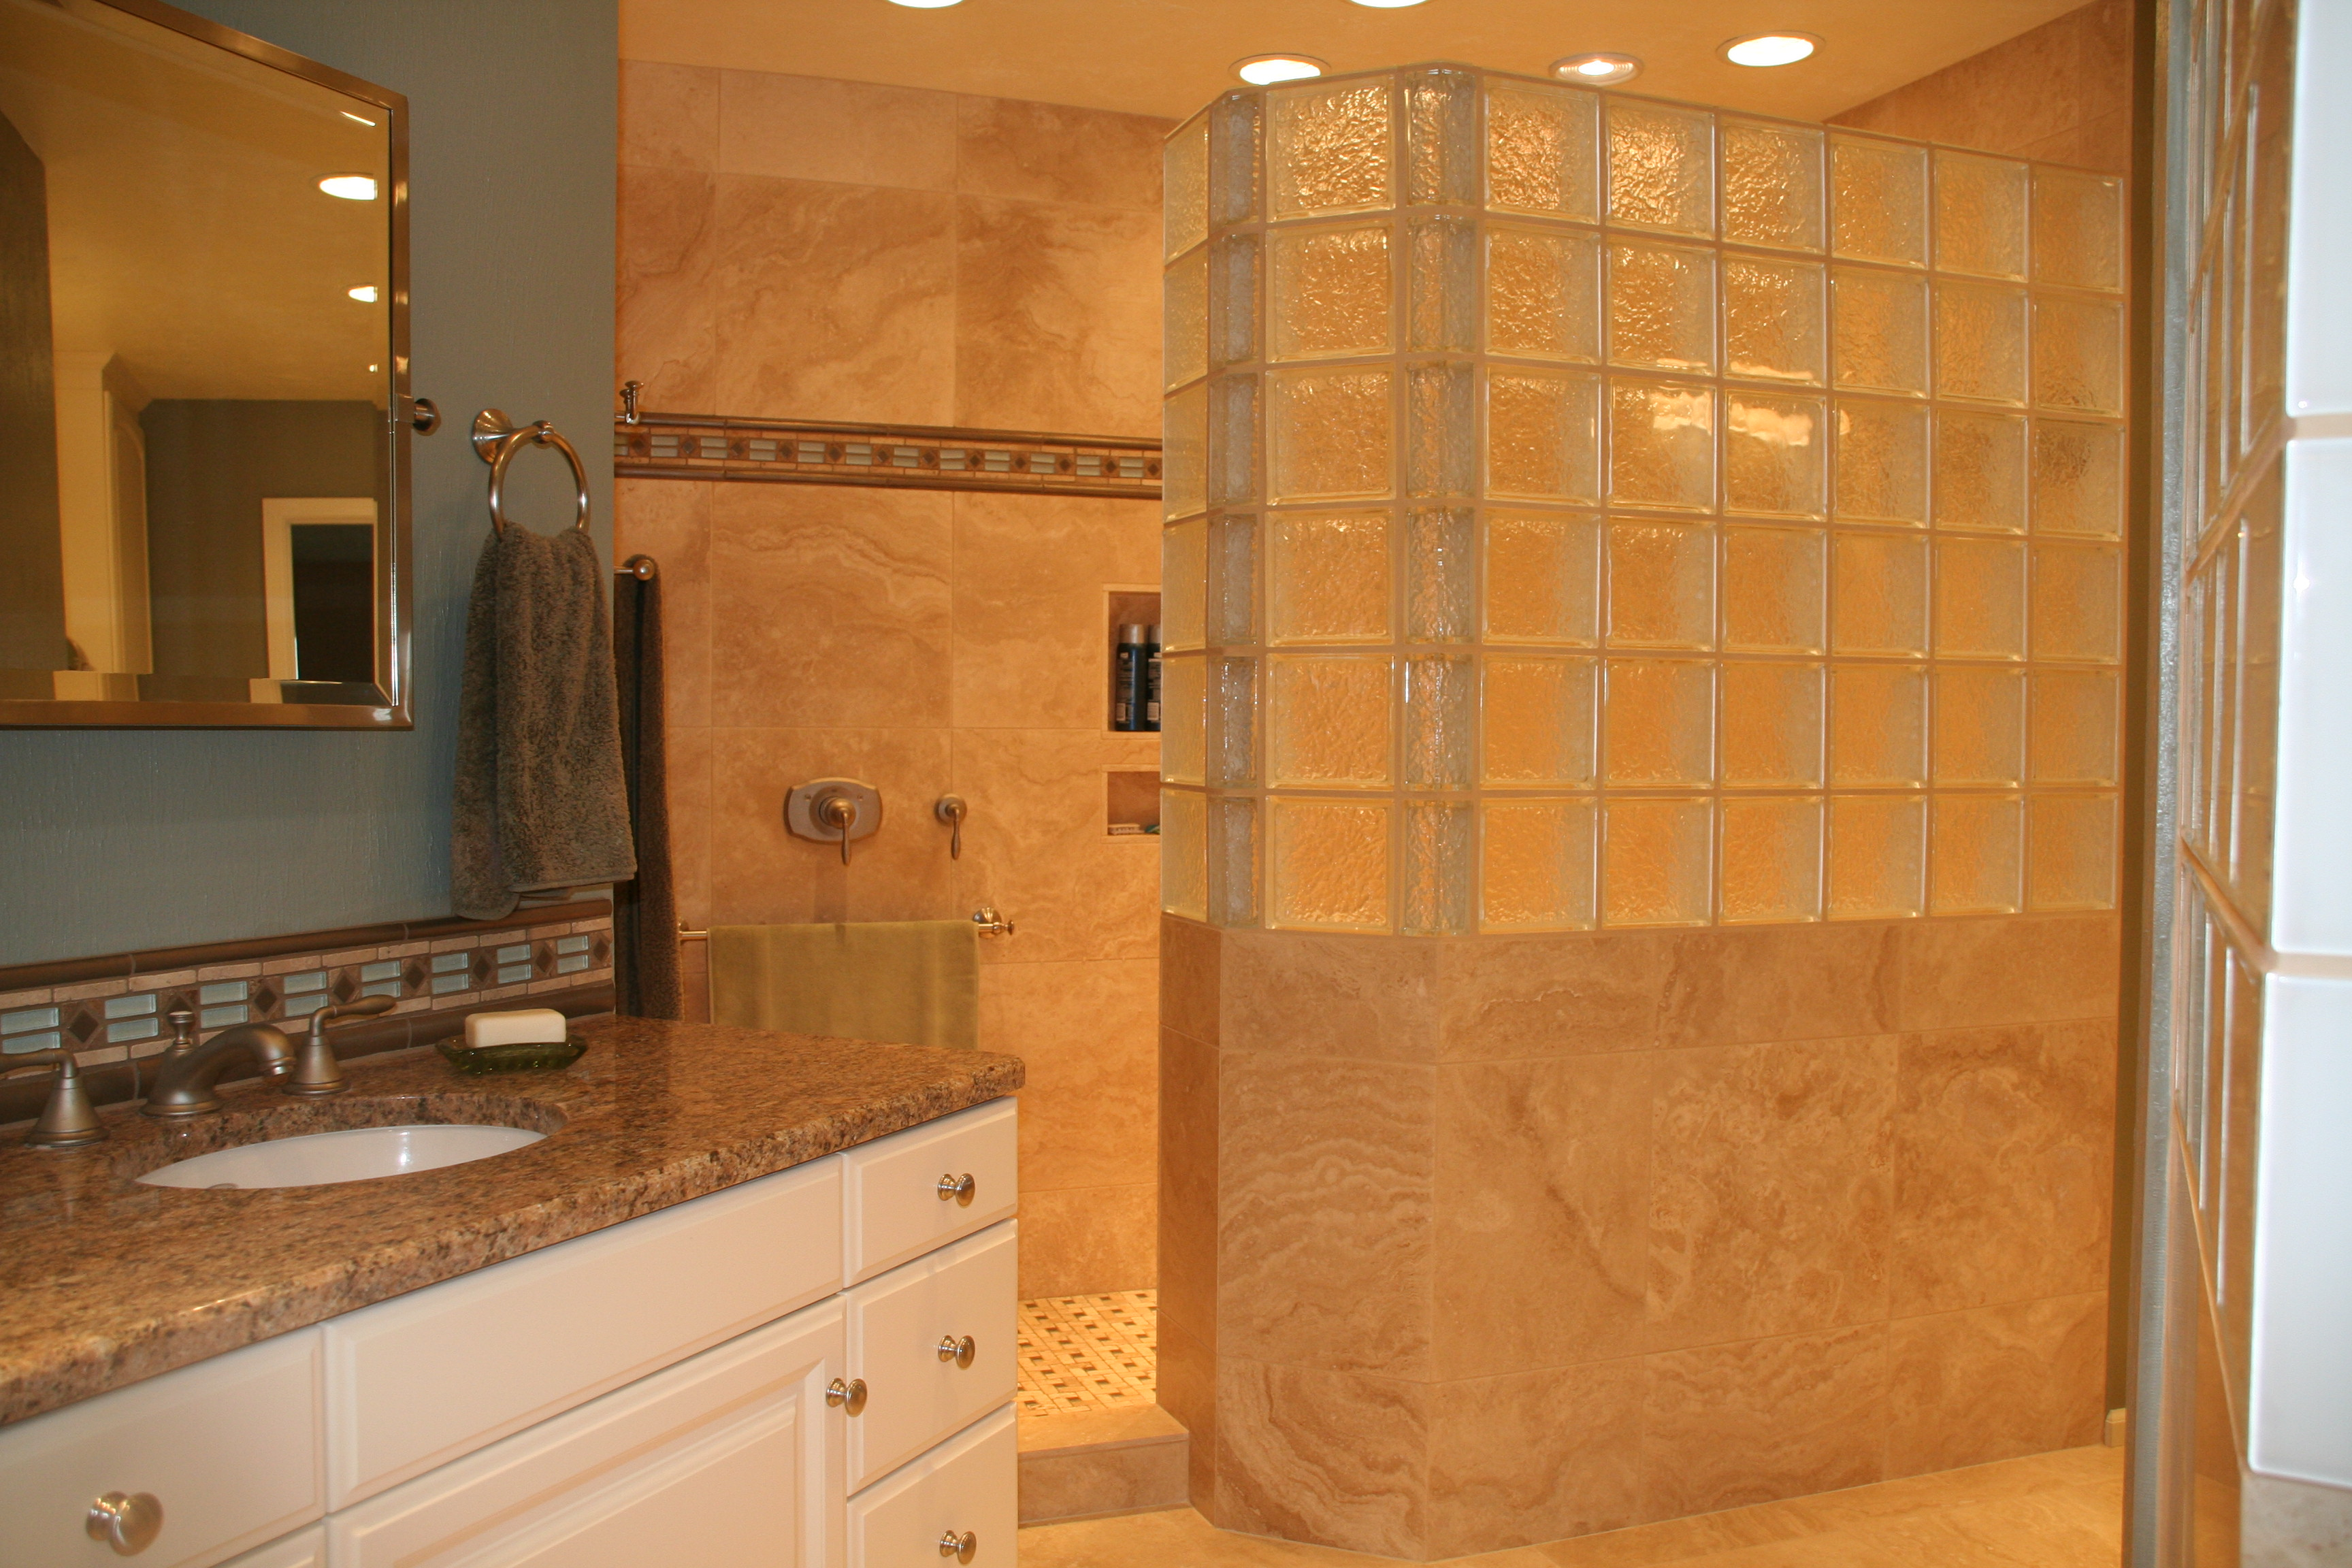 Glass block walls in bathrooms - 149 Best Home Design Images On Pinterest Architecture Tv Walls And Entertainment